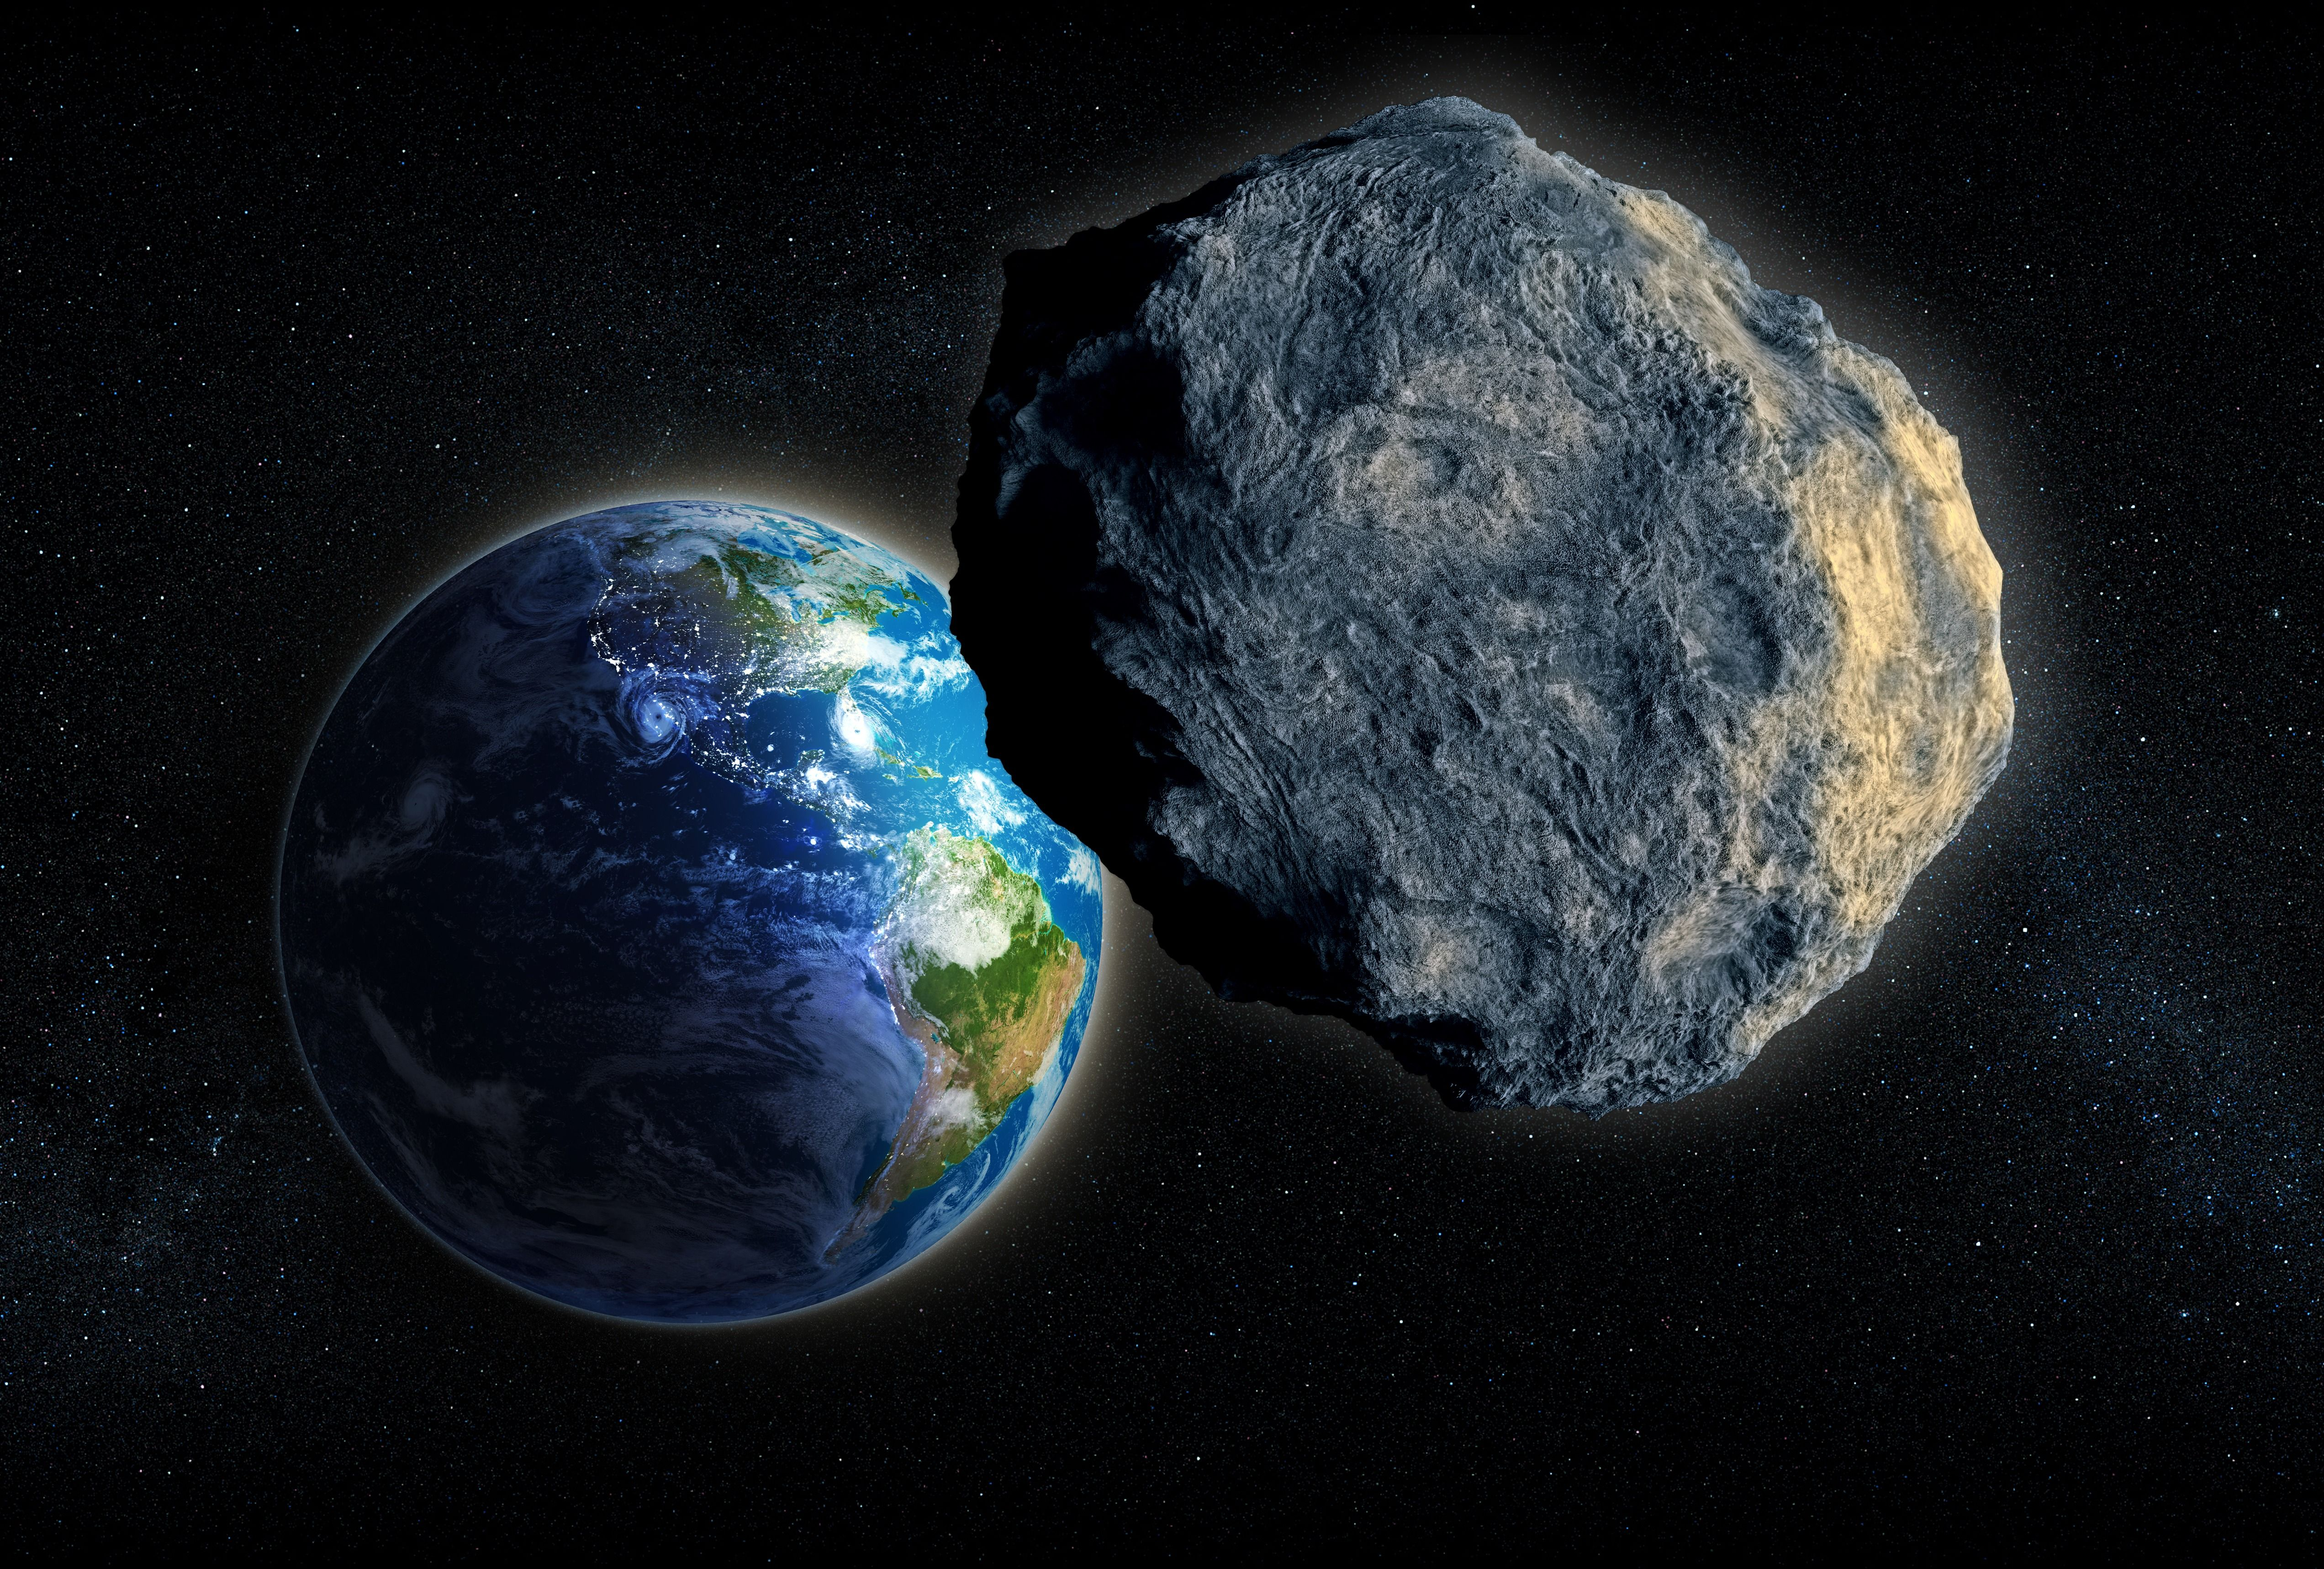 15-meter asteroid missed the Earth 68